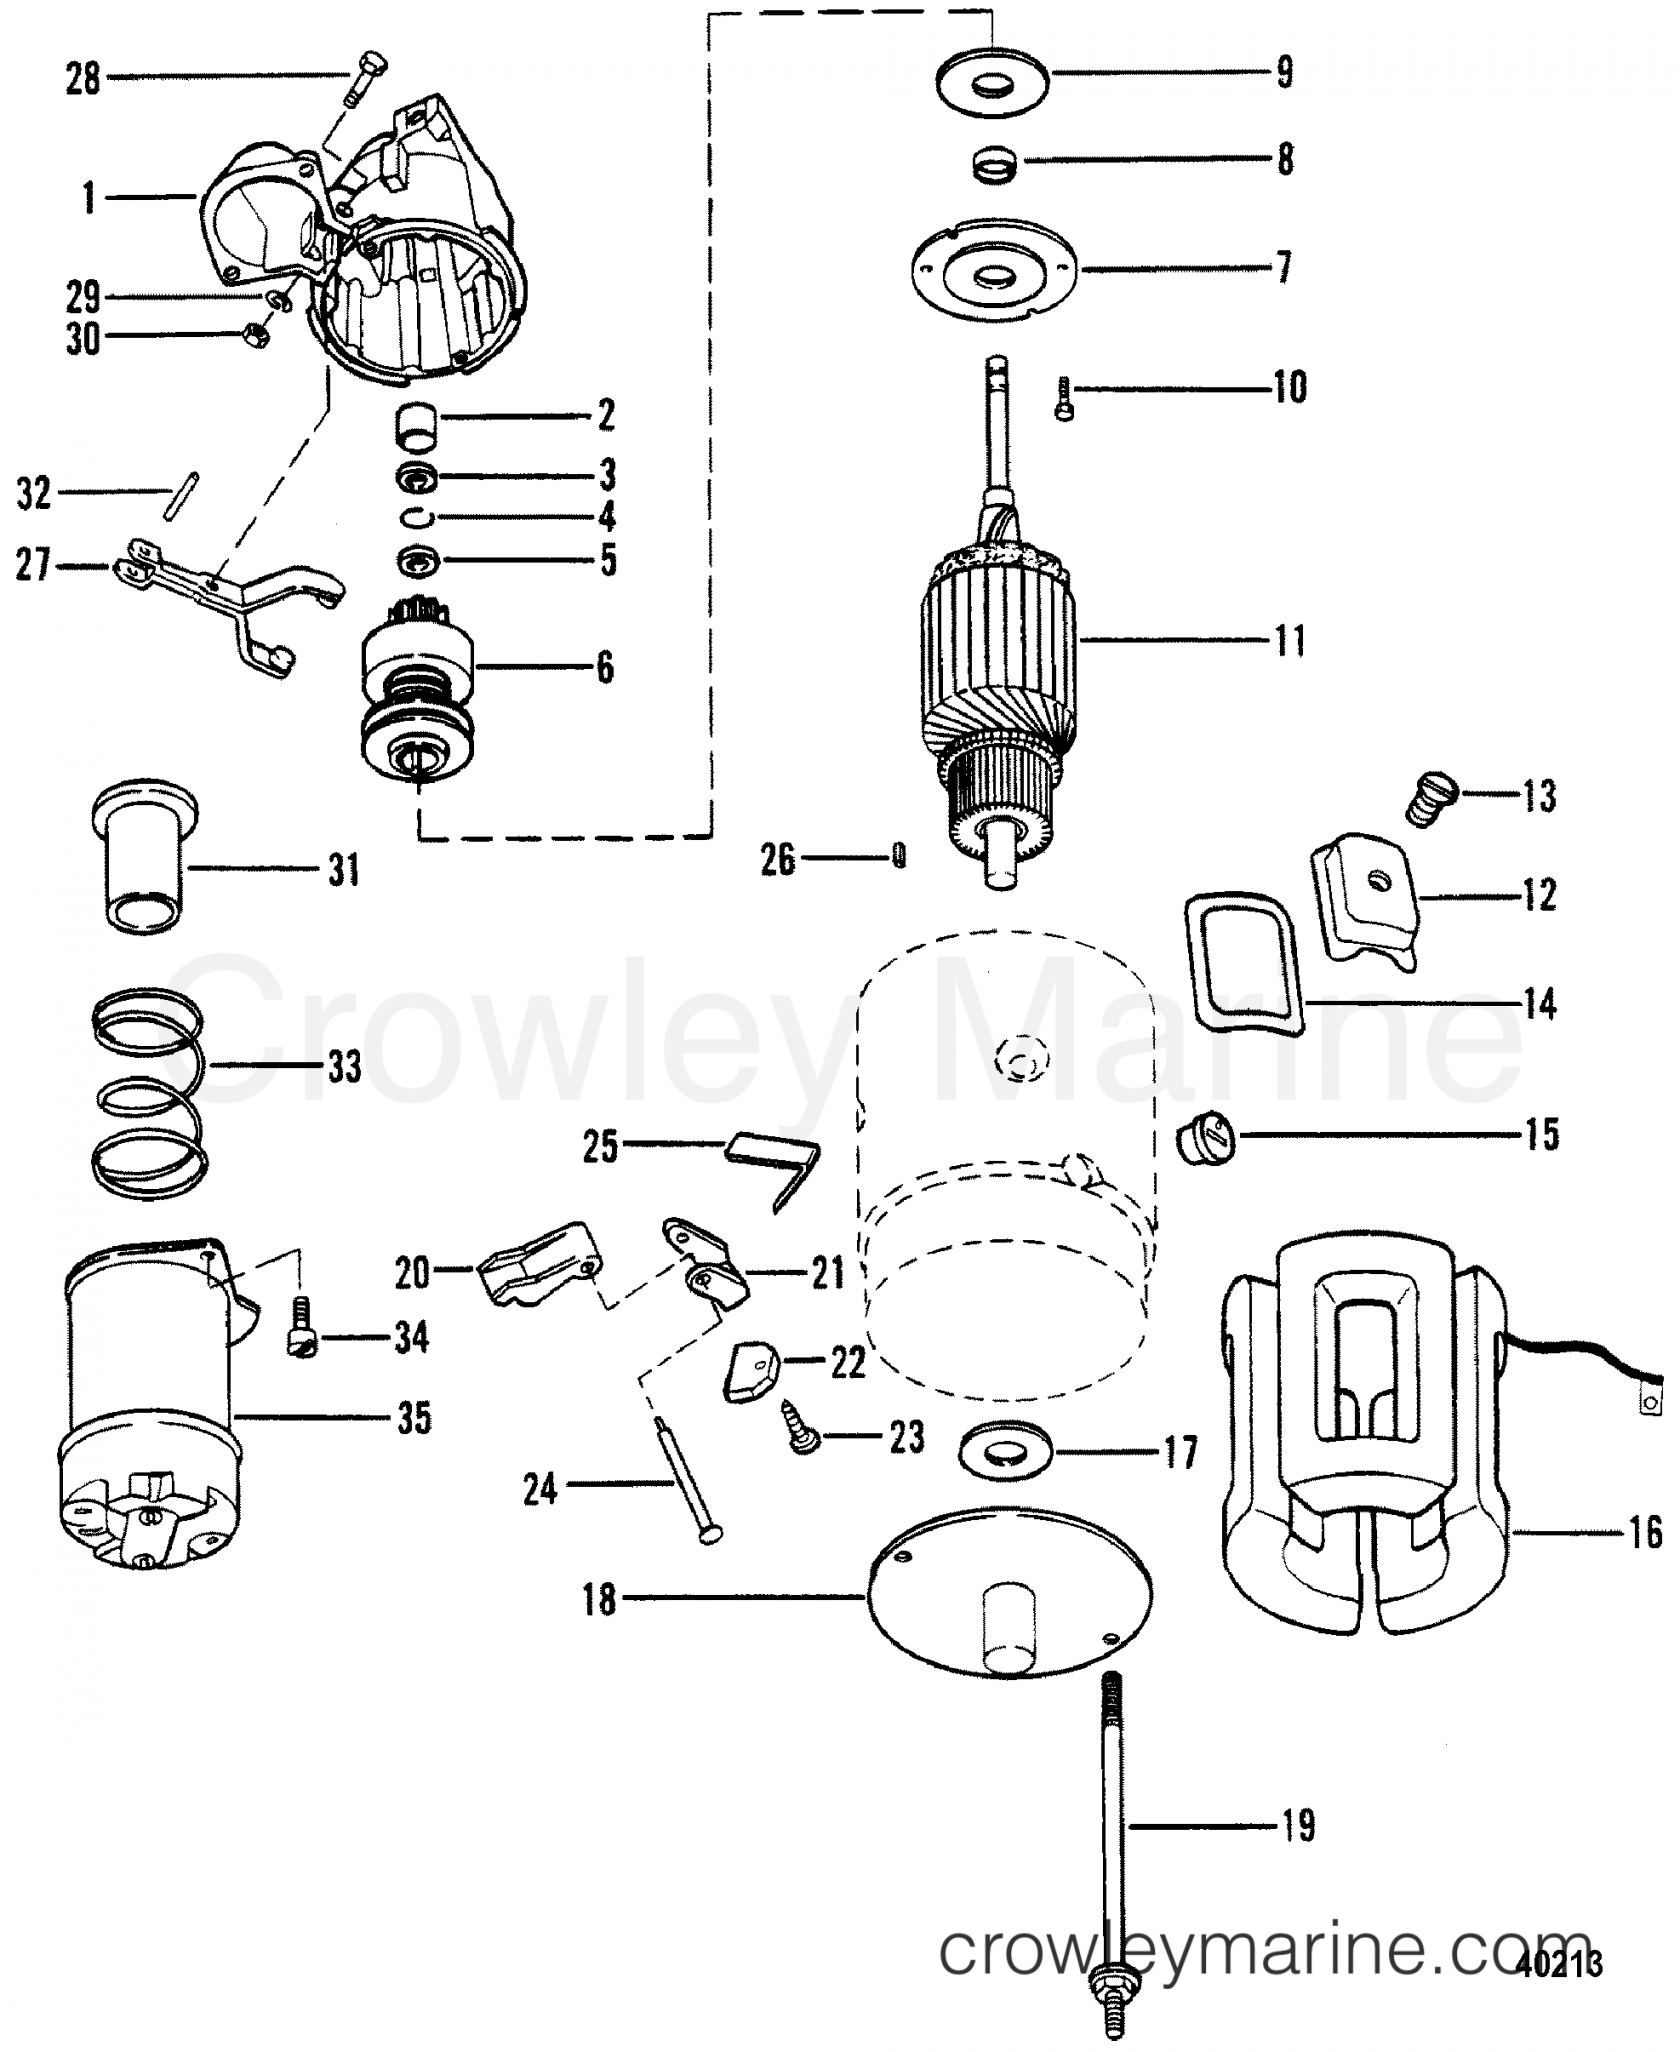 wiring terminals for electric motors